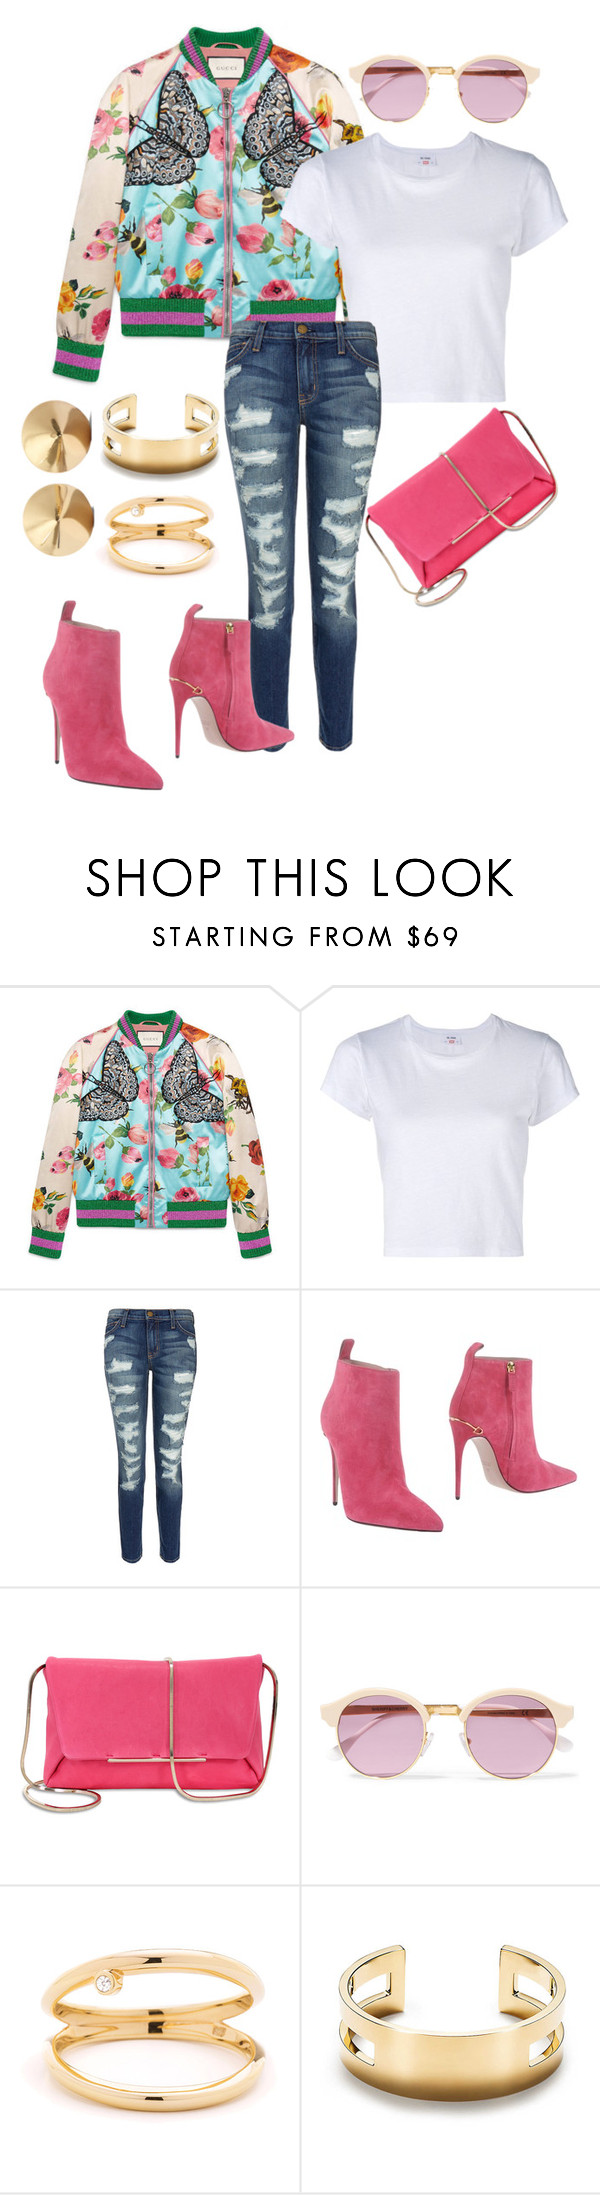 """""""Untitled #56"""" by stylesbylex on Polyvore featuring Gucci, RE/DONE, Current/Elliott, Lanvin, Sheriff&Cherry, Tiffany & Co. and Eddie Borgo"""